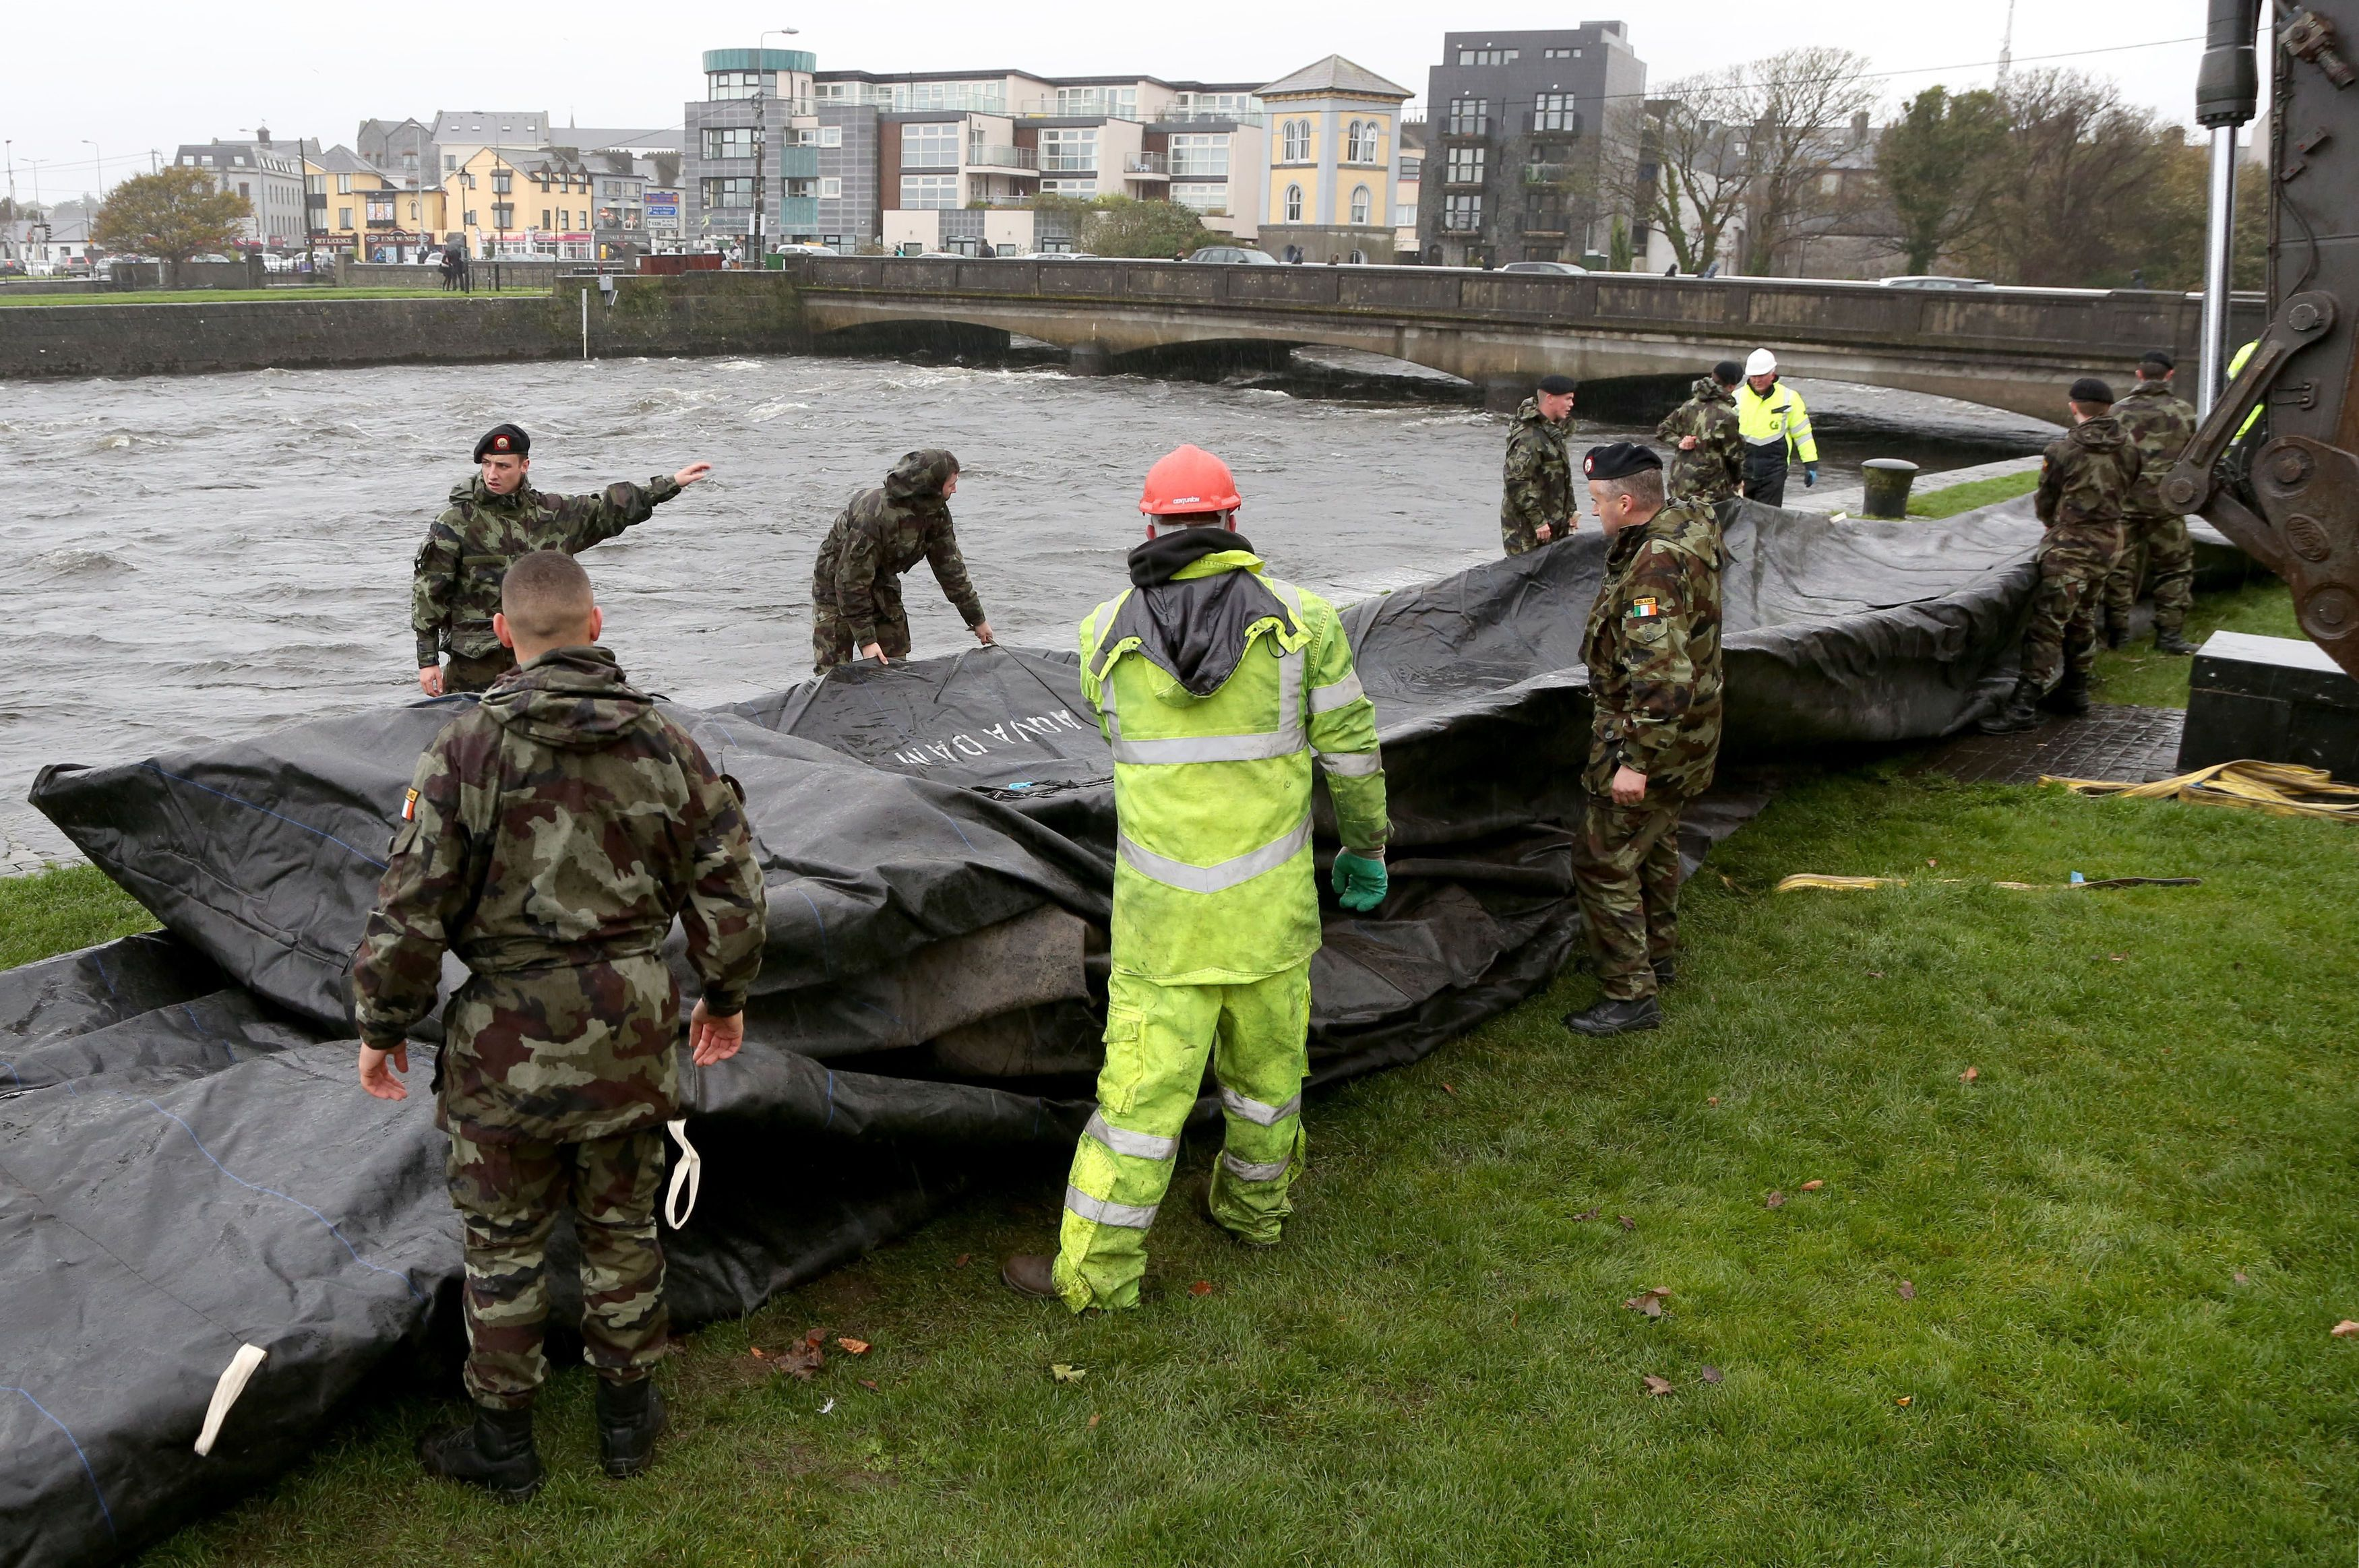 Brits Batten Down The Hatches As Storm Brian Brings 'Weather Bomb' To The